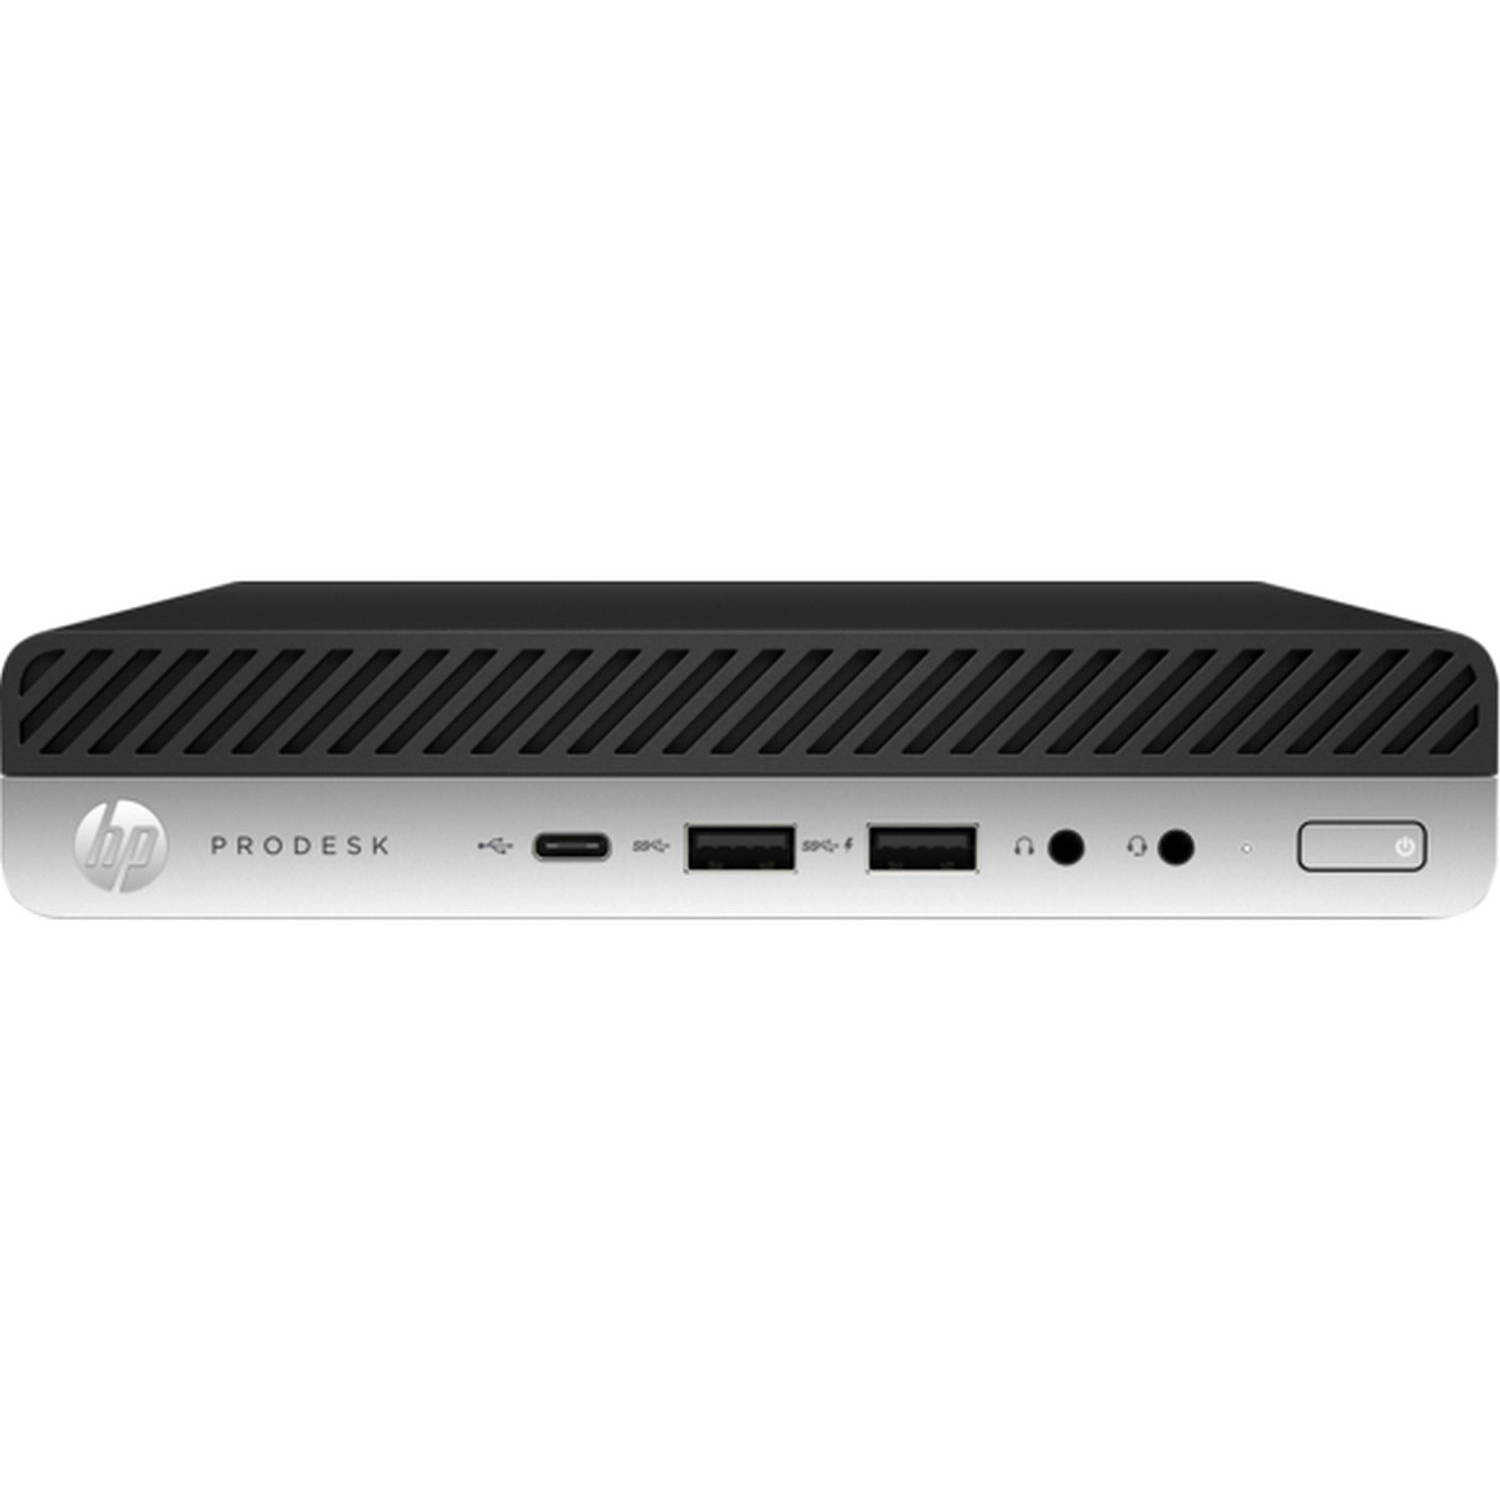 HP EliteDesk 800 35W G3 Desktop Mini PC w/ Intel i7-7700T, 8GB RAM & 1TB HDD